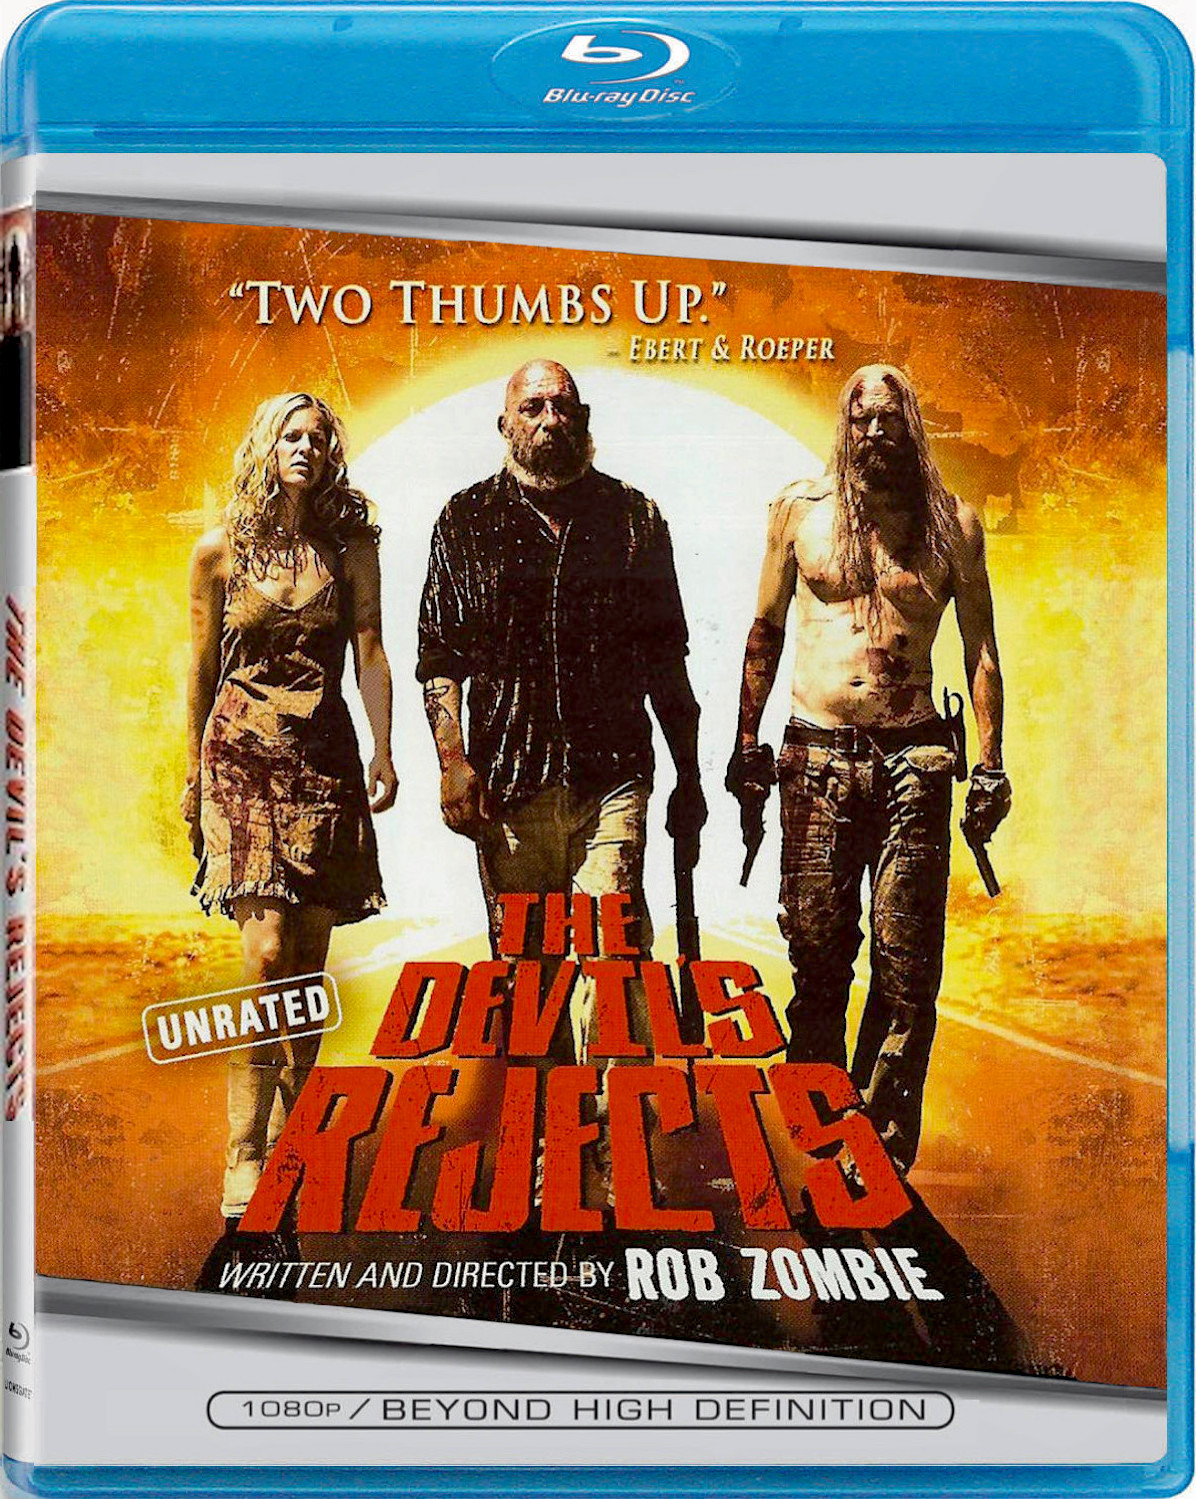 The Devil's Rejects 2005 Hindi Dual Audio 400MB UNRATED BluRay 480p ESubs Free Download